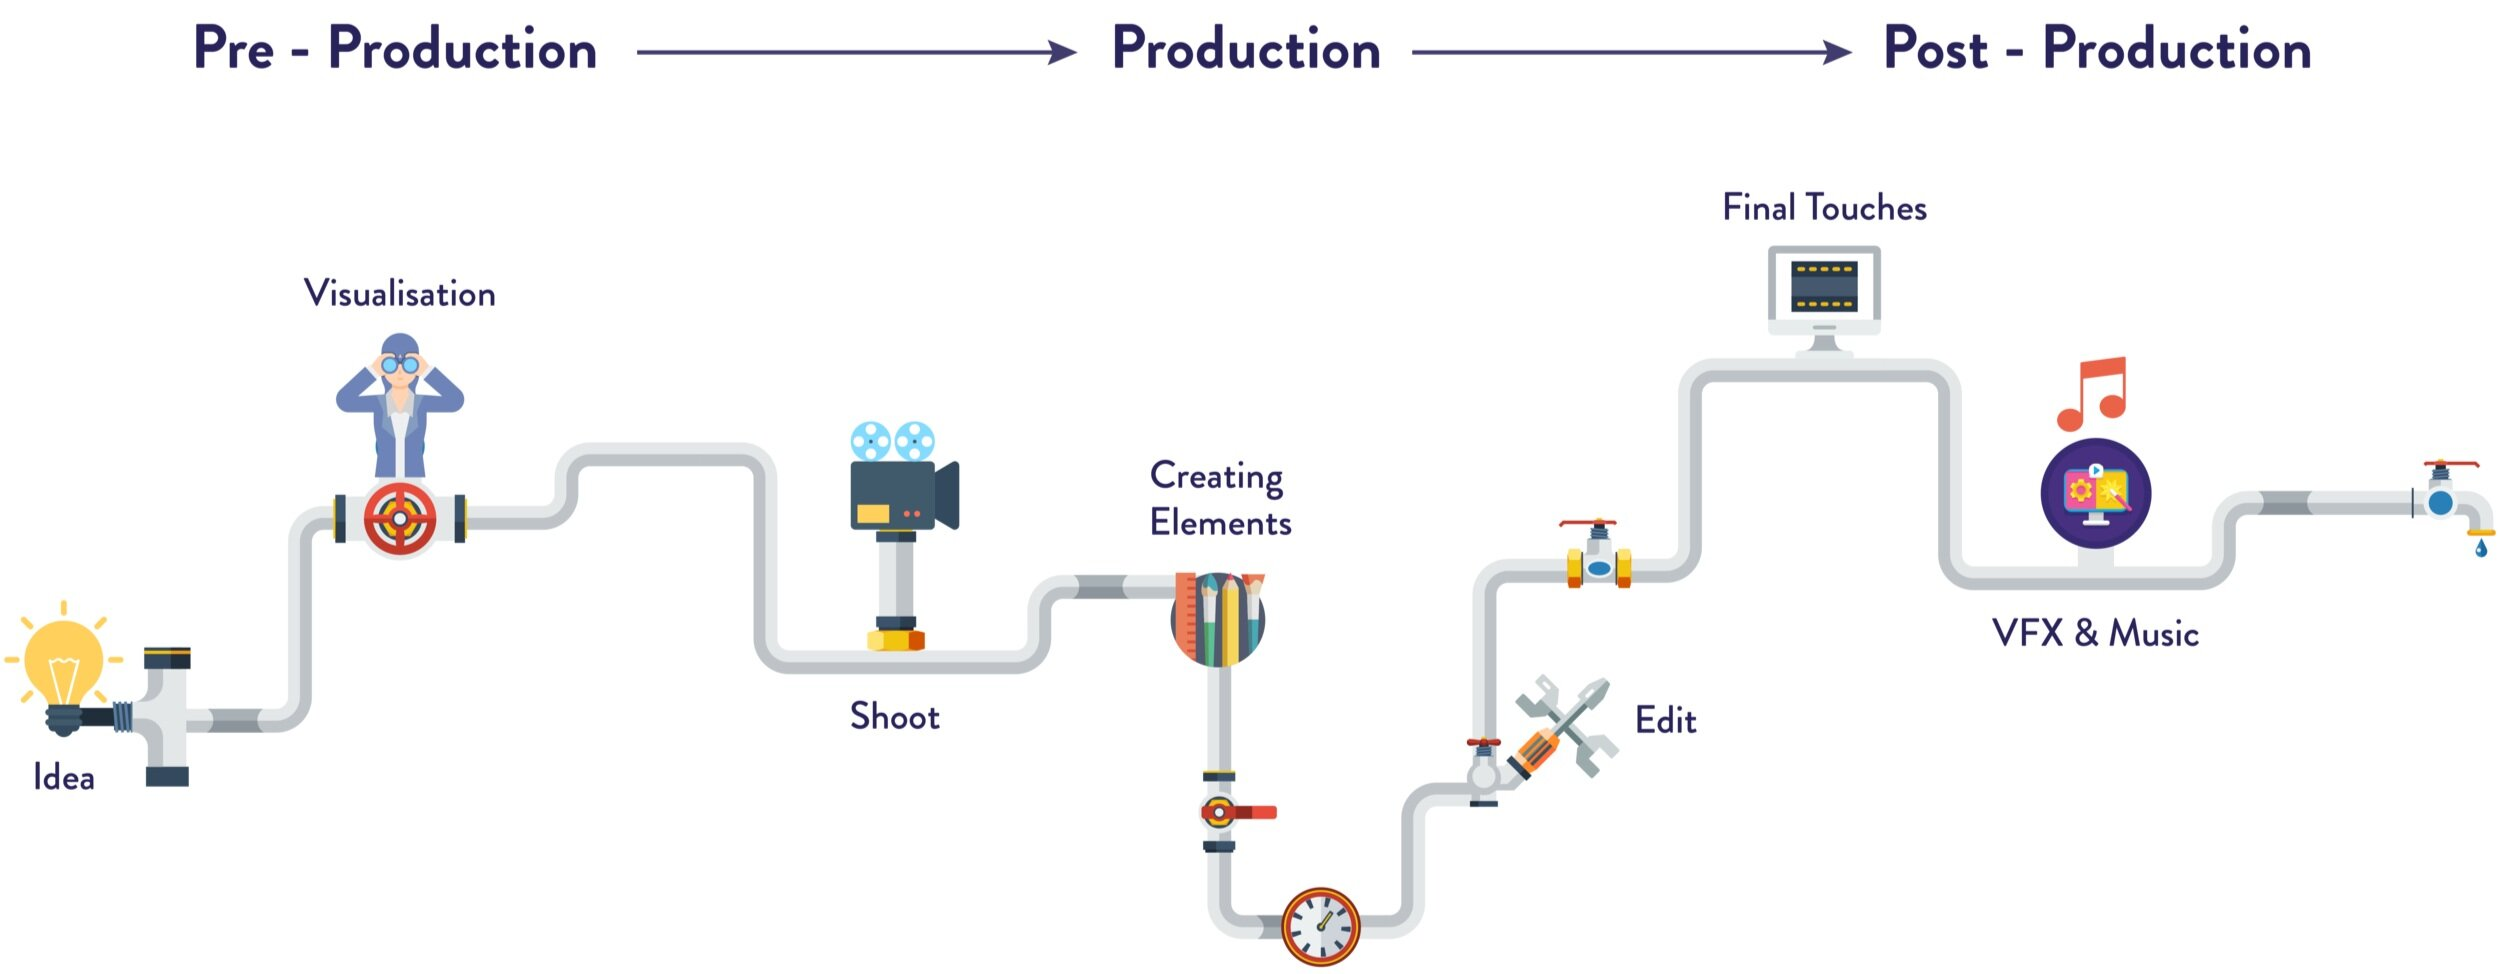 production pipeline-01.png